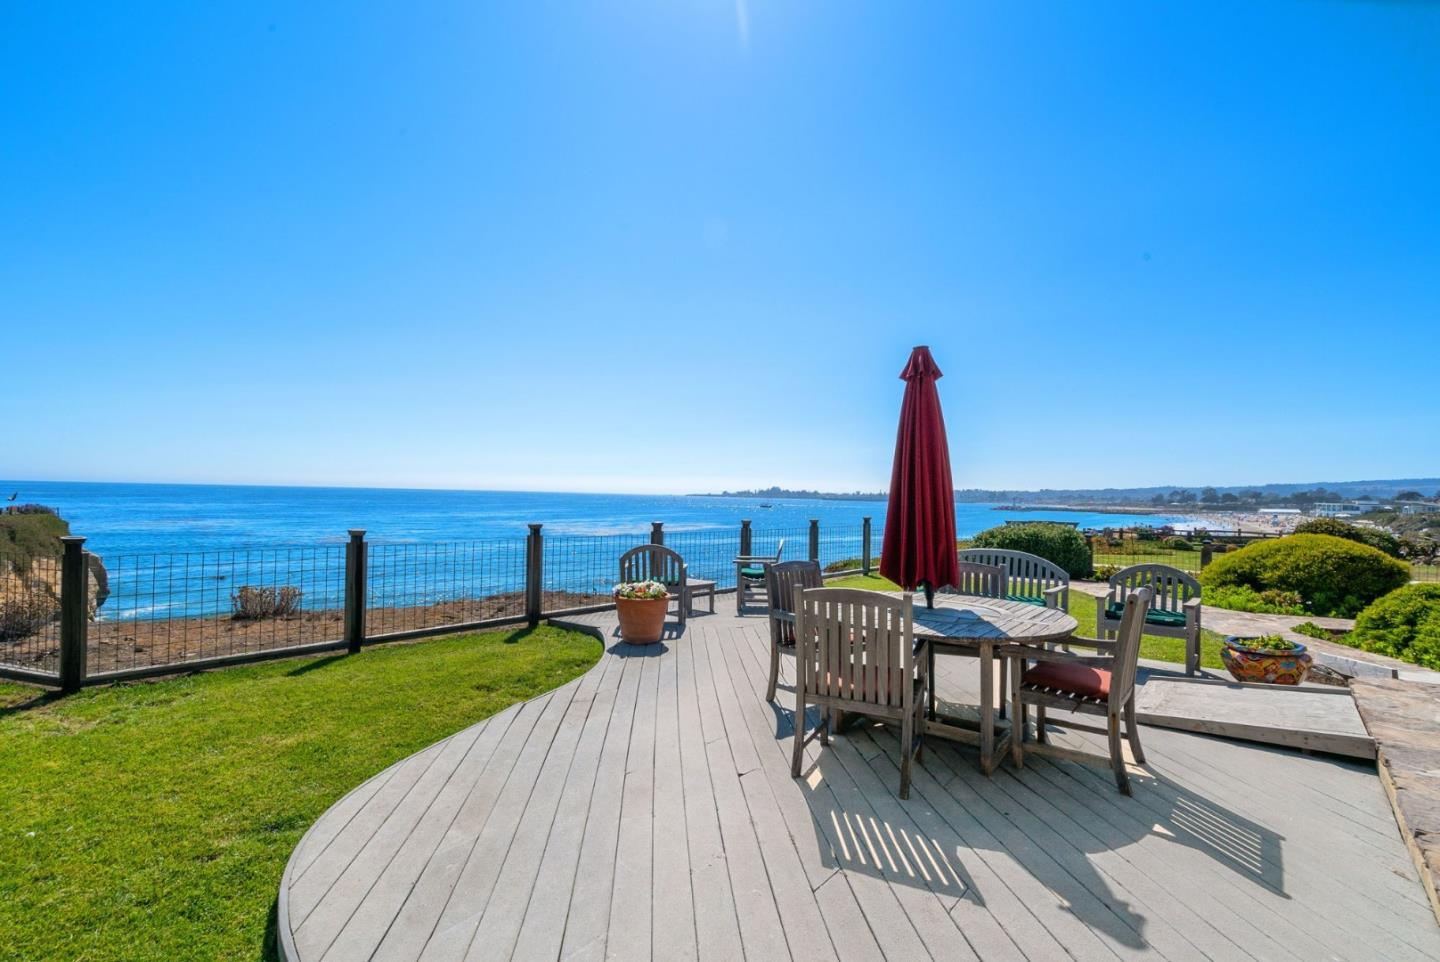 One of the best oceanfront locations in Santa Cruz with direct views of the Yacht Harbor, West Cliff Drive & the Boardwalk. Located in a private gated enclave next to Black Pt nestled between Twin Lakes Beach & Sunny Cove with quick beach access. One of the few premier locations along the Santa Cruz coastline w/almost 1/2 AC flat bluff top lot on a cul de sac. Incredible ocean views out almost every window. The single-level cottage has 2BRs w/hardwood floors, gas fireplace in dining/living area, cozy office nook, updated baths & kitchen. There is also a separate 2BR guest suite, 1 car garage & a large parking area. Plenty of room for entertaining w/multiple patios, decks, & lawn w/built-in BBQ & hot tub. One of the few original homes left on the street. A wonderful place to watch spellbinding ocean sunsets, sea life, entertain & unwind. You may never want to leave home, but if you do, you are a short distance to restaurants & activities at the Yacht Harbor & the popular Pleasure Point.